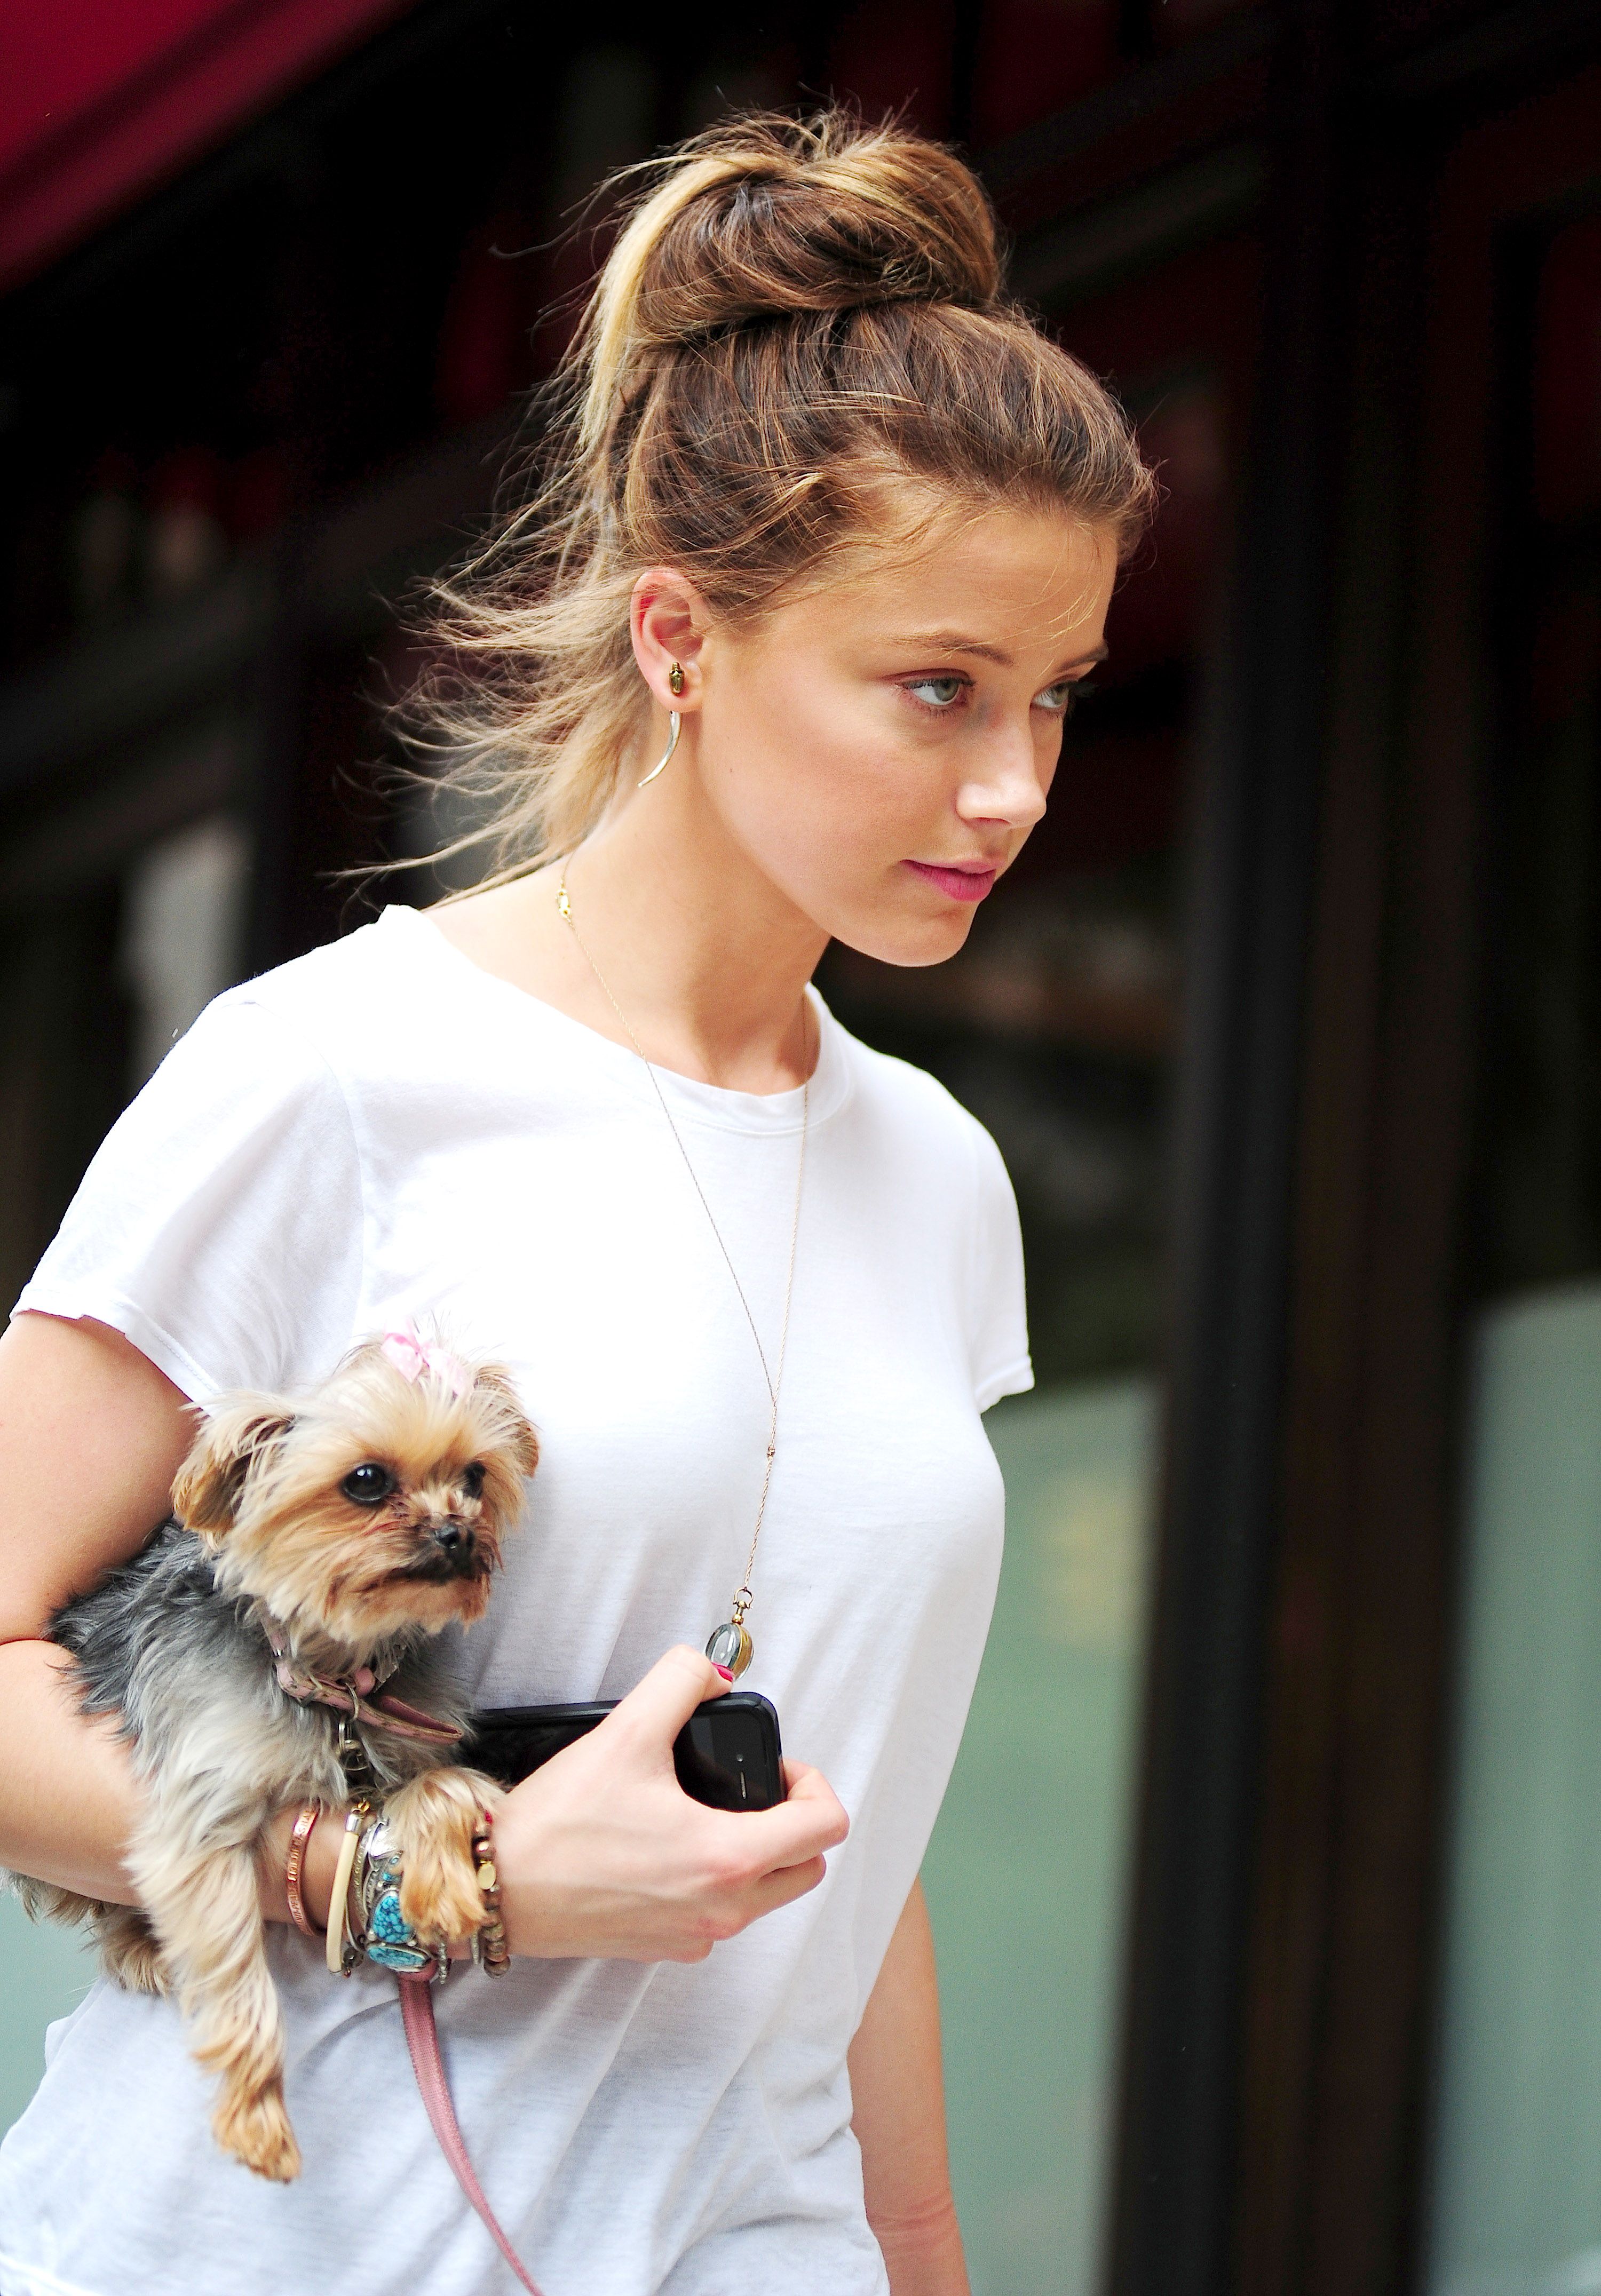 Amber Heard is seen in Tribeca on the streets of Manhattan on Aug. 27, 2012, in New York City